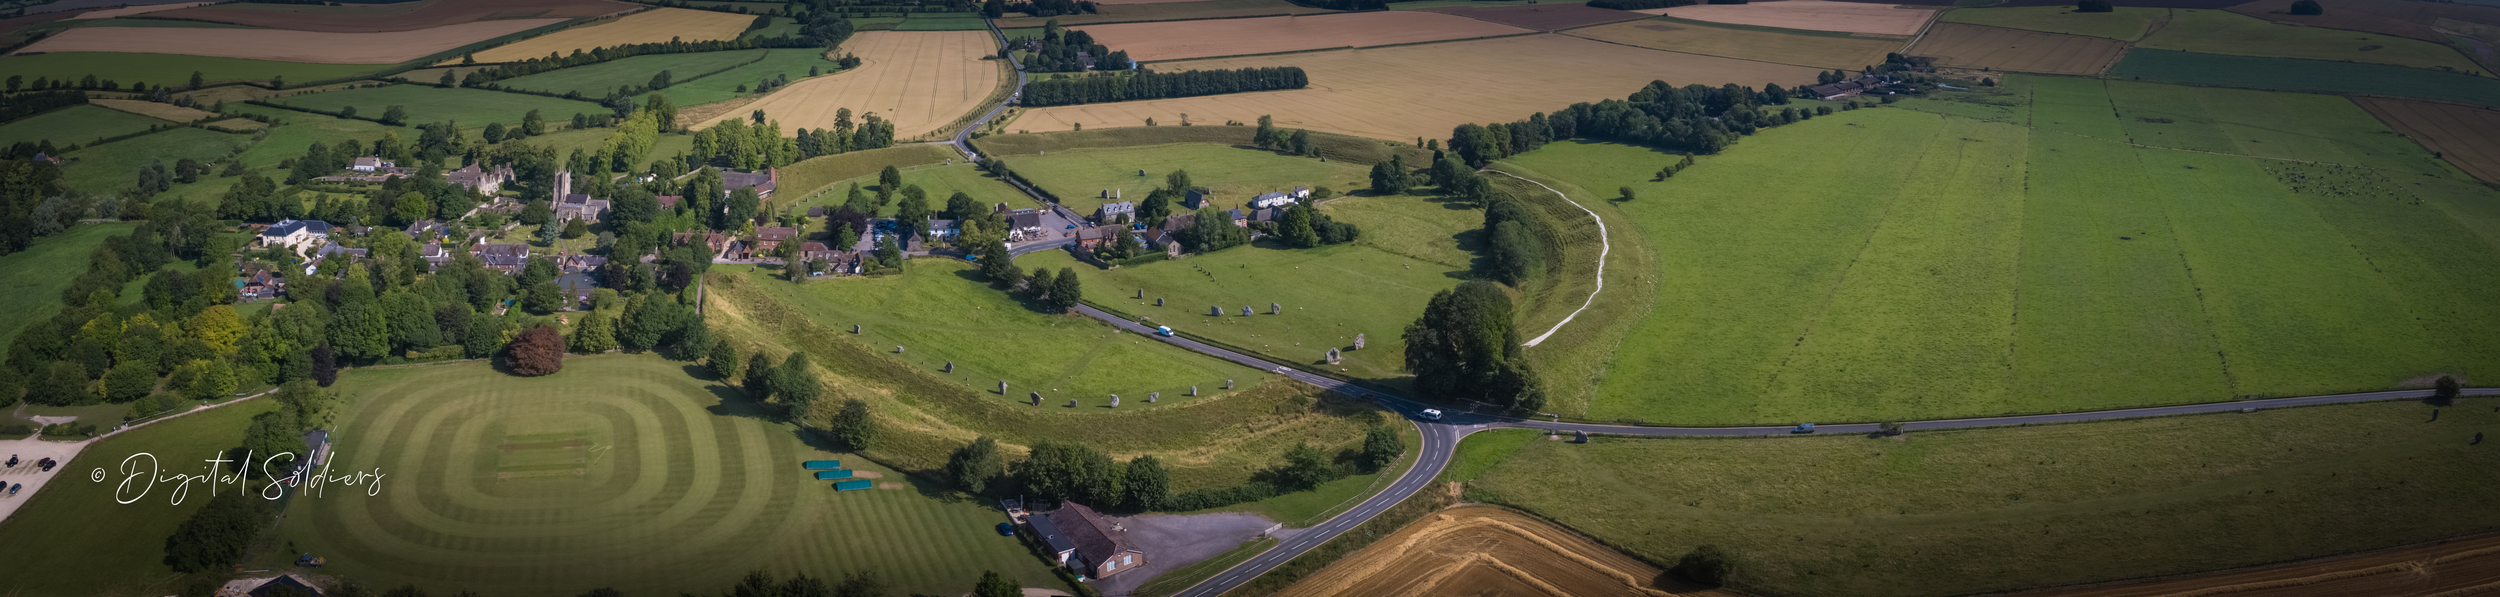 Avebury Stones from the air